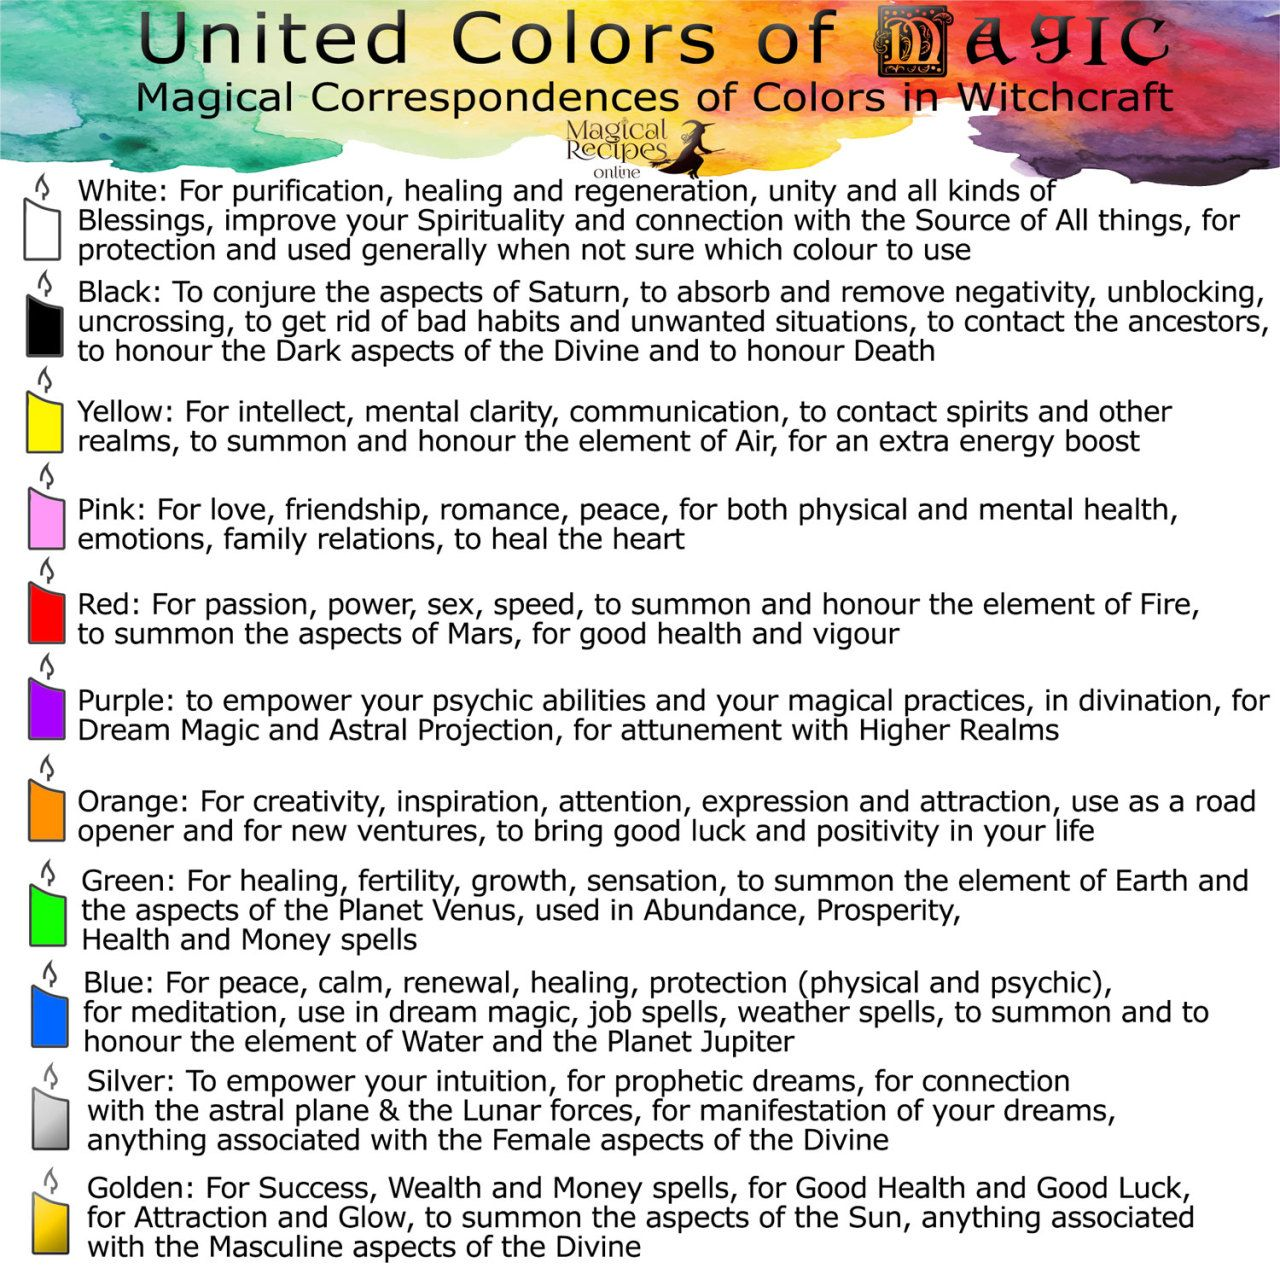 Witchcraft Magic Color Correspondences Spells Candles Wiccan Wicca